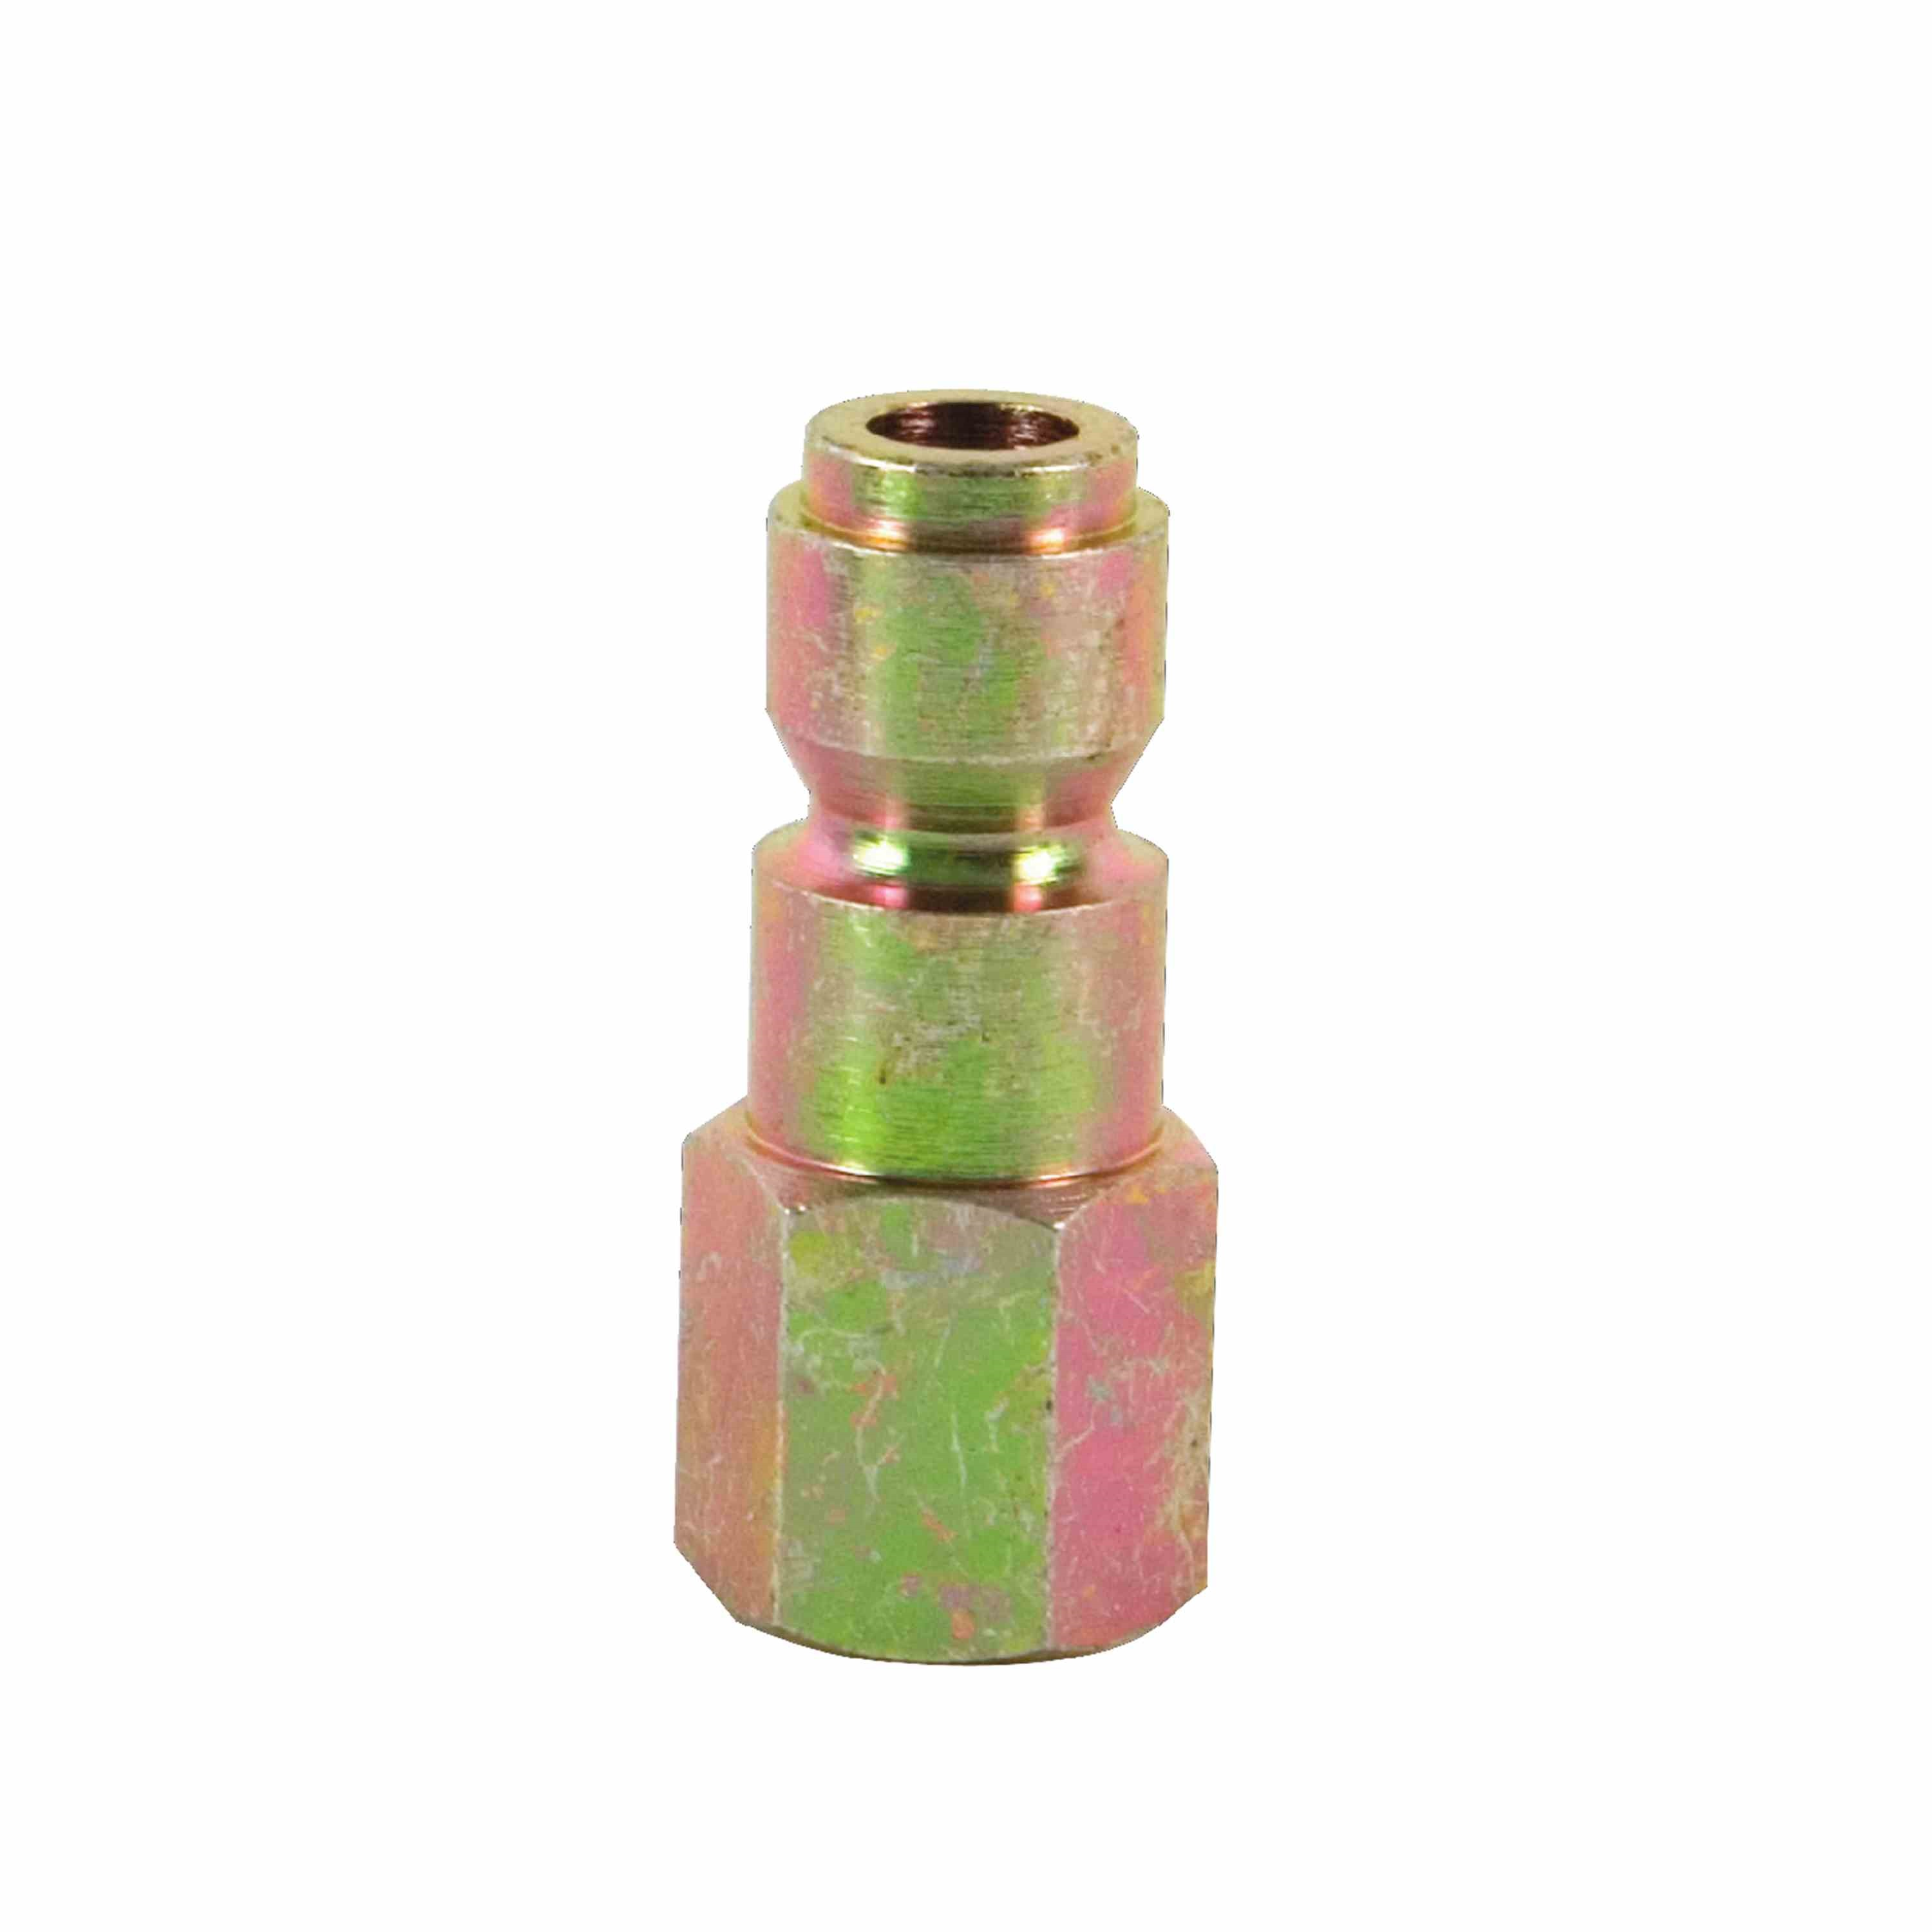 Bostitch - Automotive 38 Series Plug  14 NPT Female Thread - AP-14F